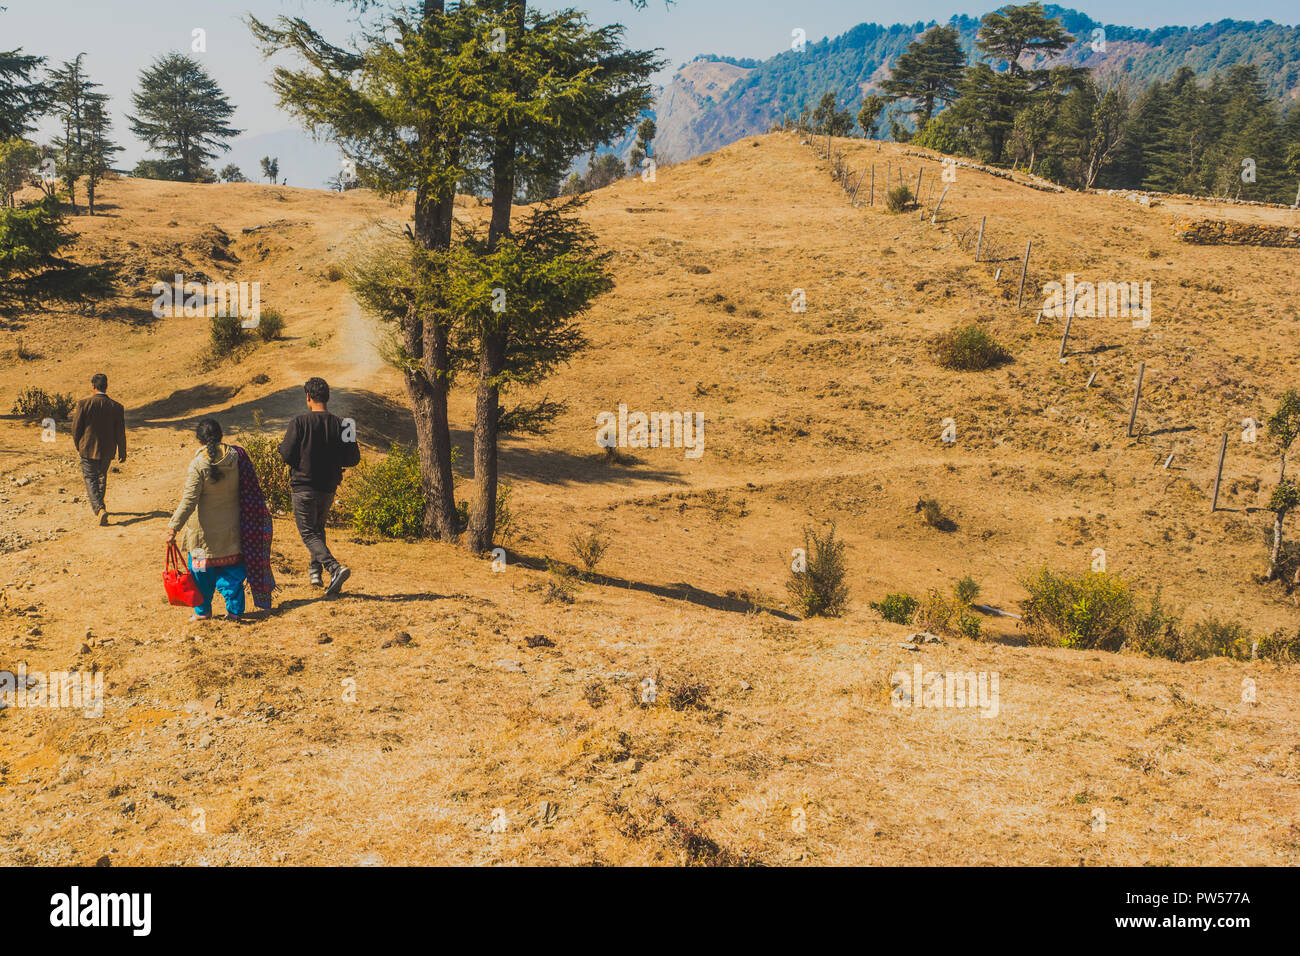 Picture of an indian family taking a stroll at a hilltop among trees - Stock Image